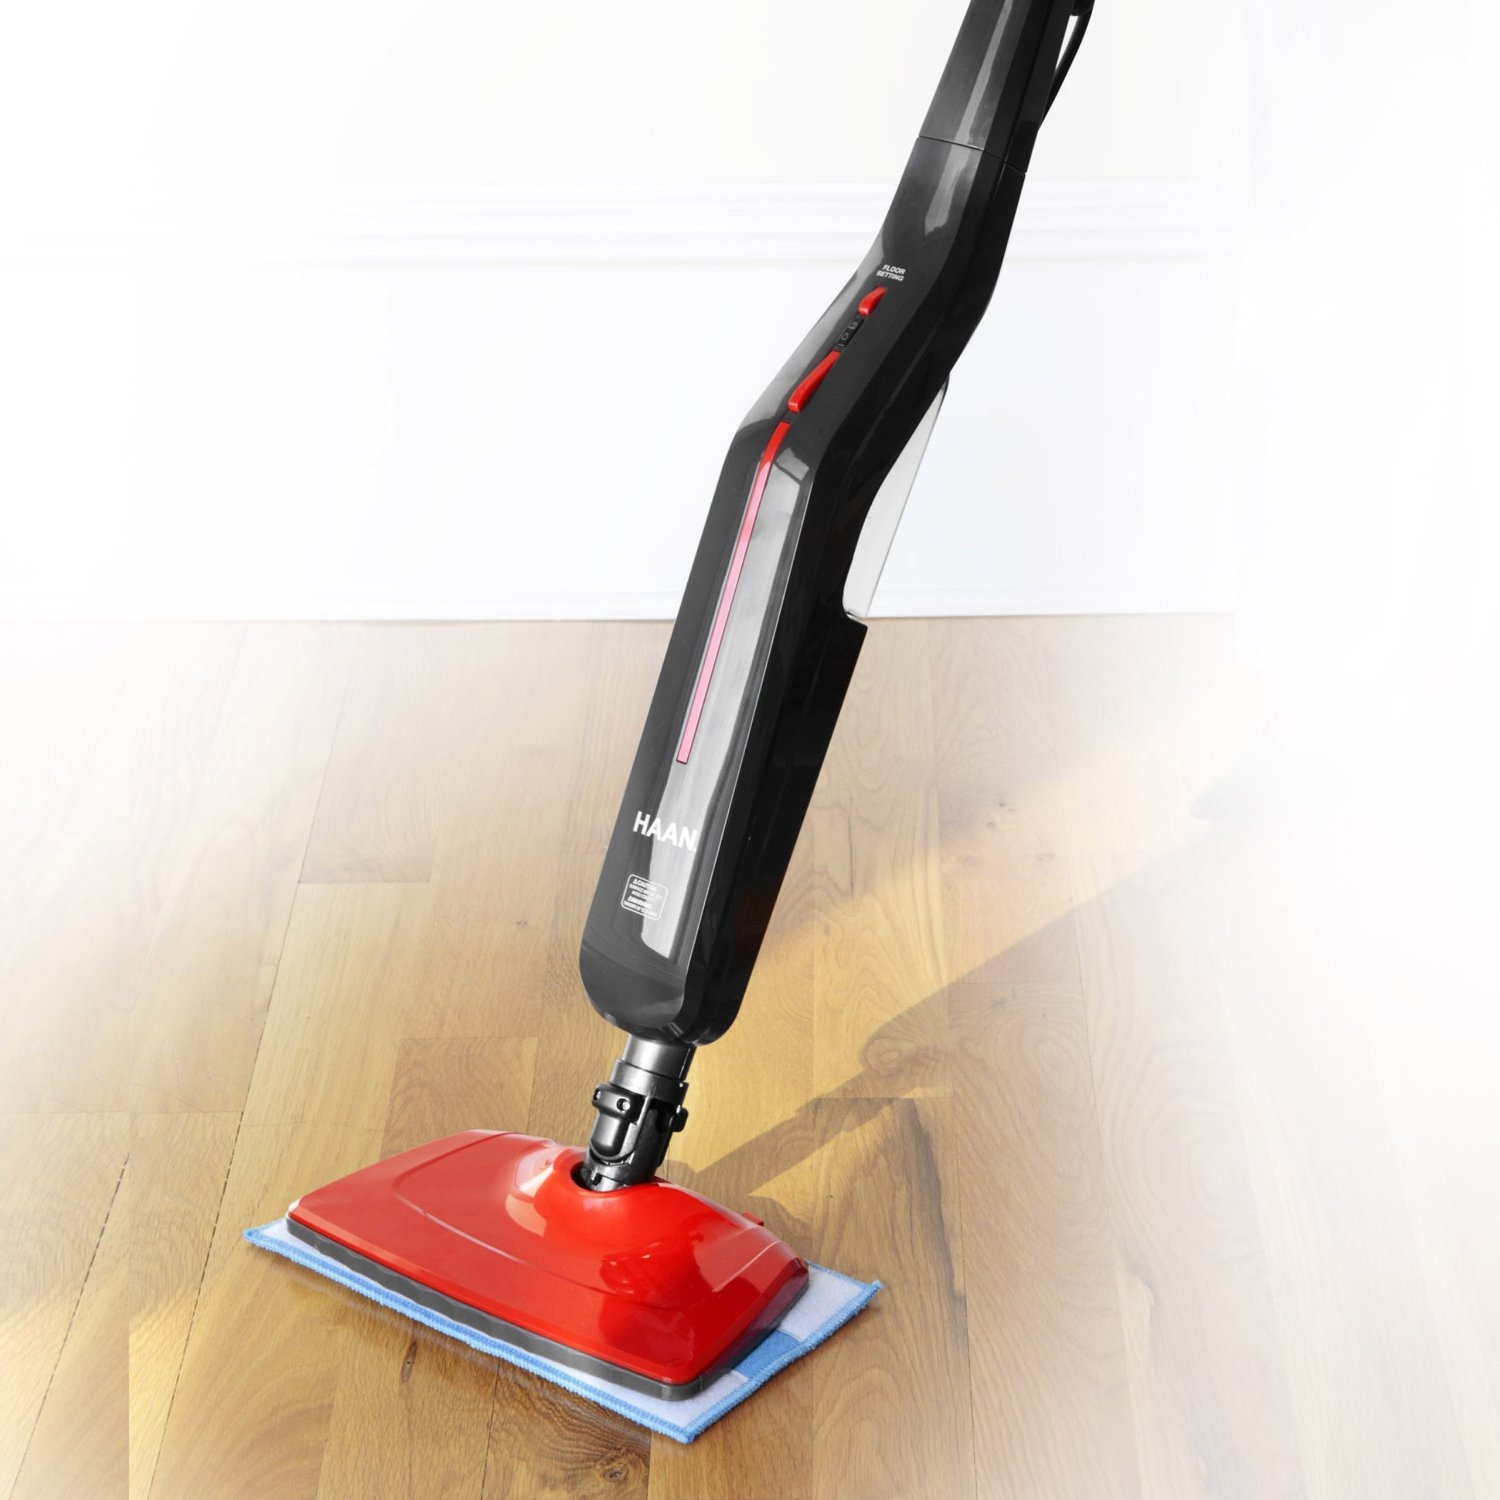 The Best Mop For Laminate Wood Floors